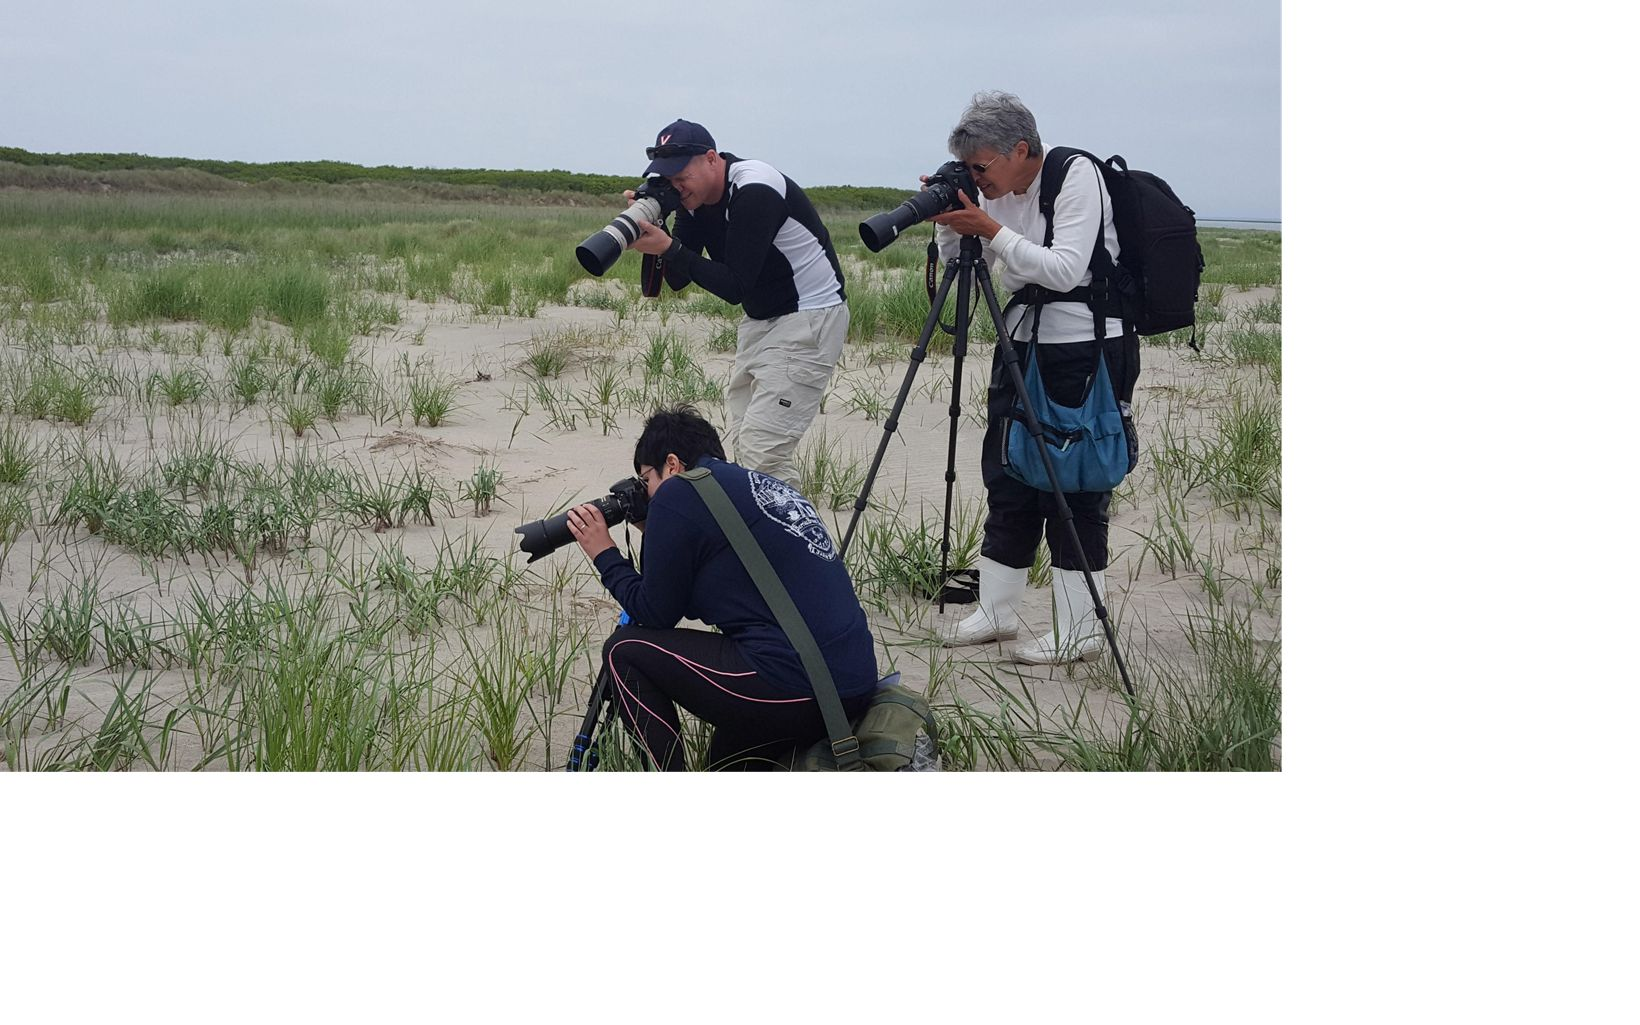 Three people with cameras photograph an unseen animal in the grass on a beach..